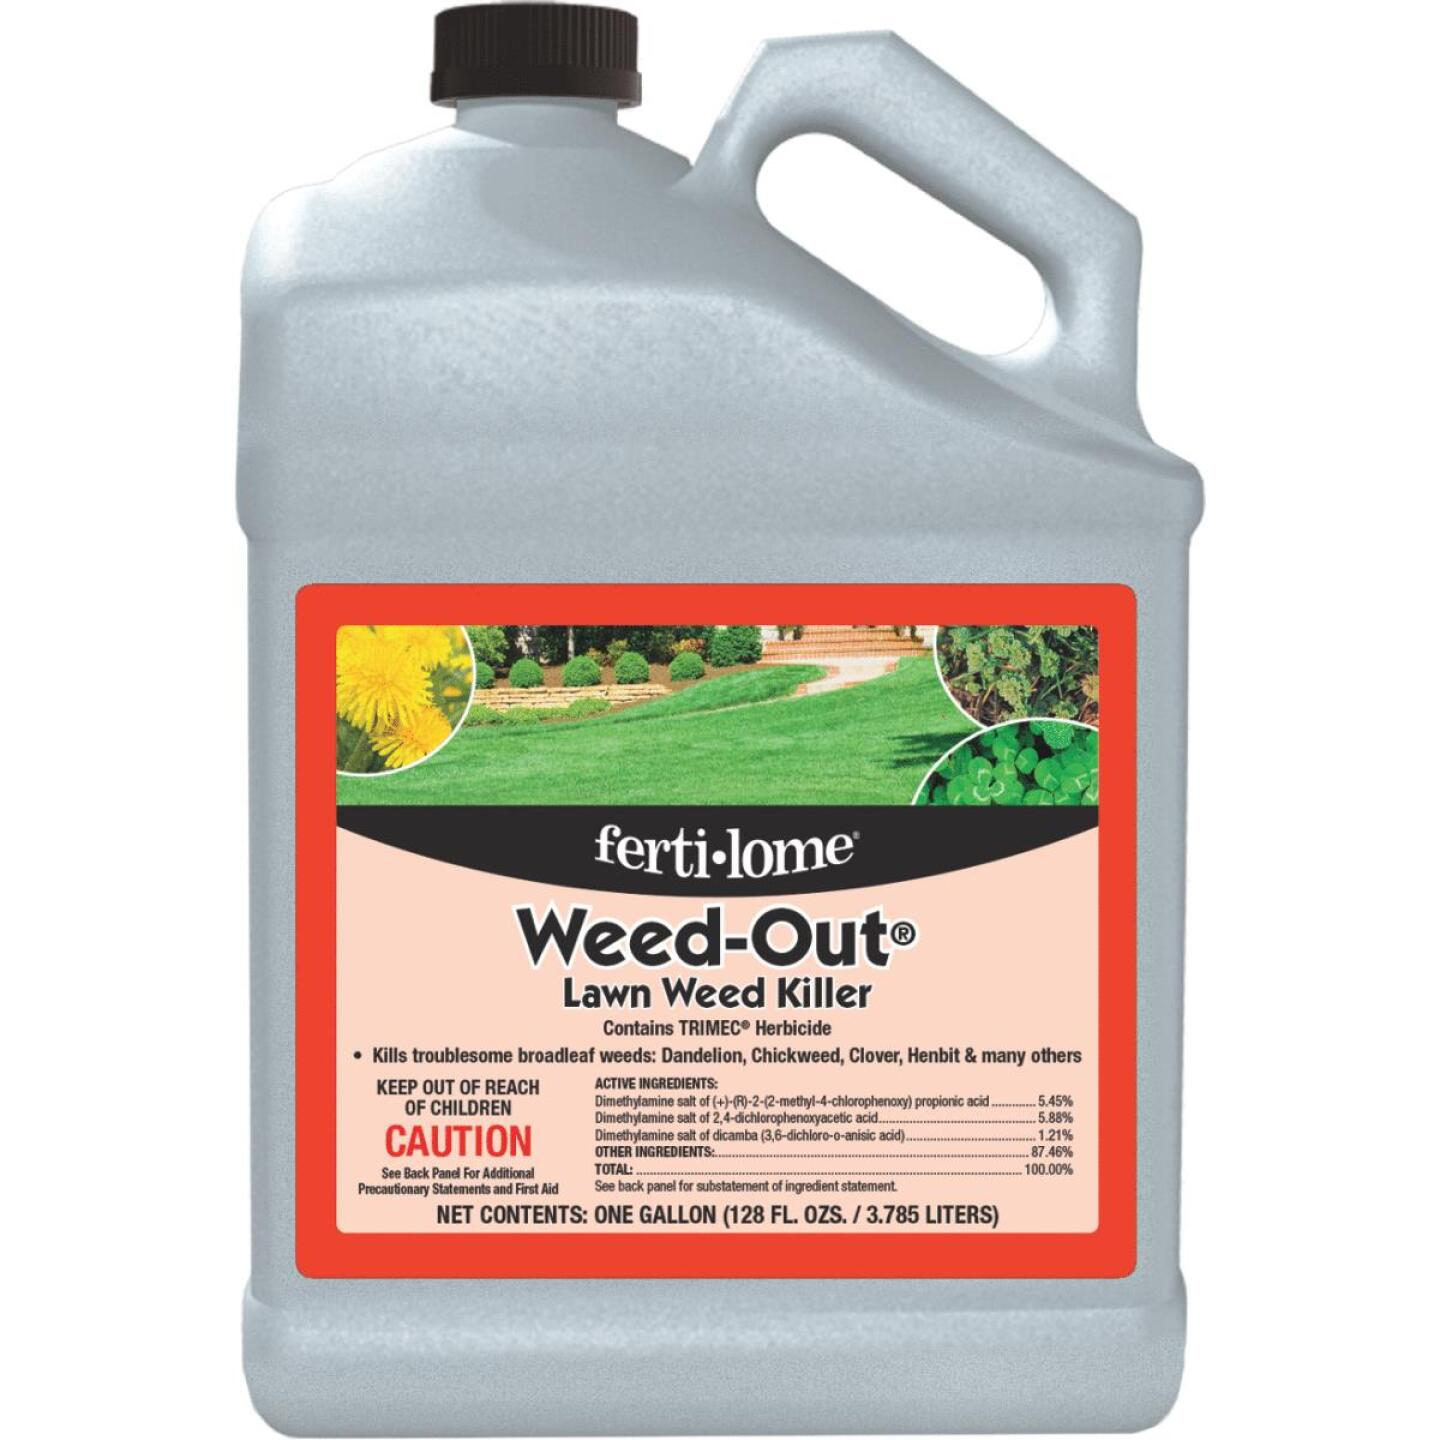 Ferti-lome Weed-Out 1 Gal. Concentrate Lawn Weed Killer Image 1